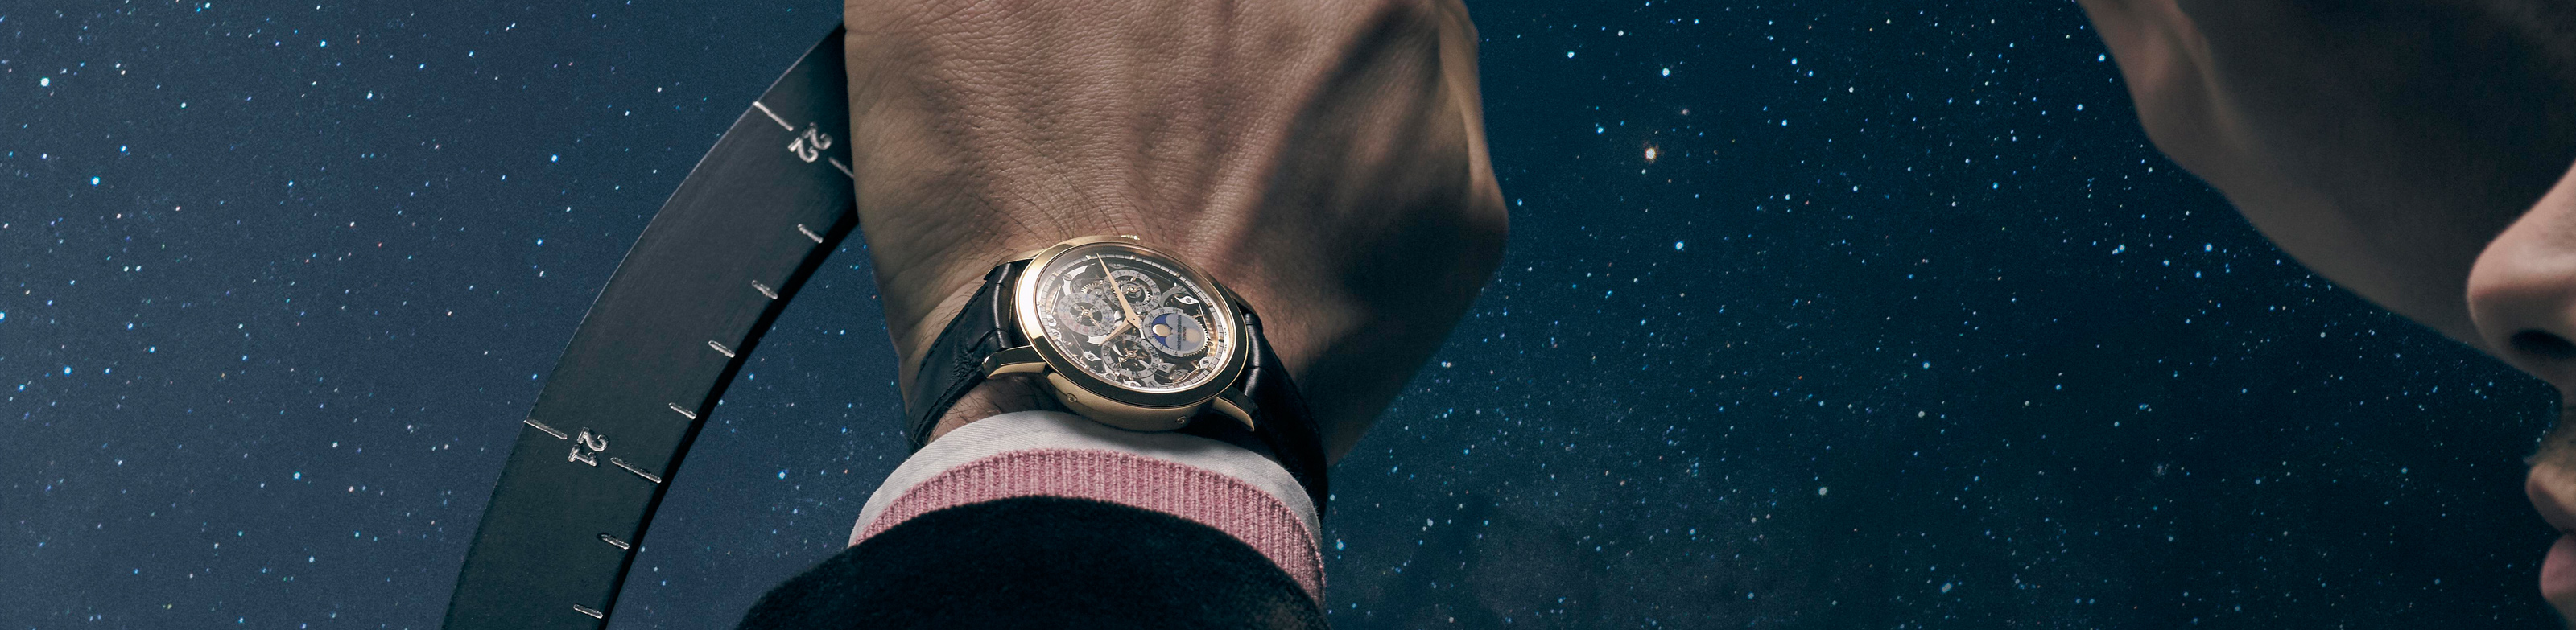 VACHERON CONSTANTIN - THE ART OF SKELETON DIAL TIMEPIECES - AUGUST 2020 NEWS article hero image